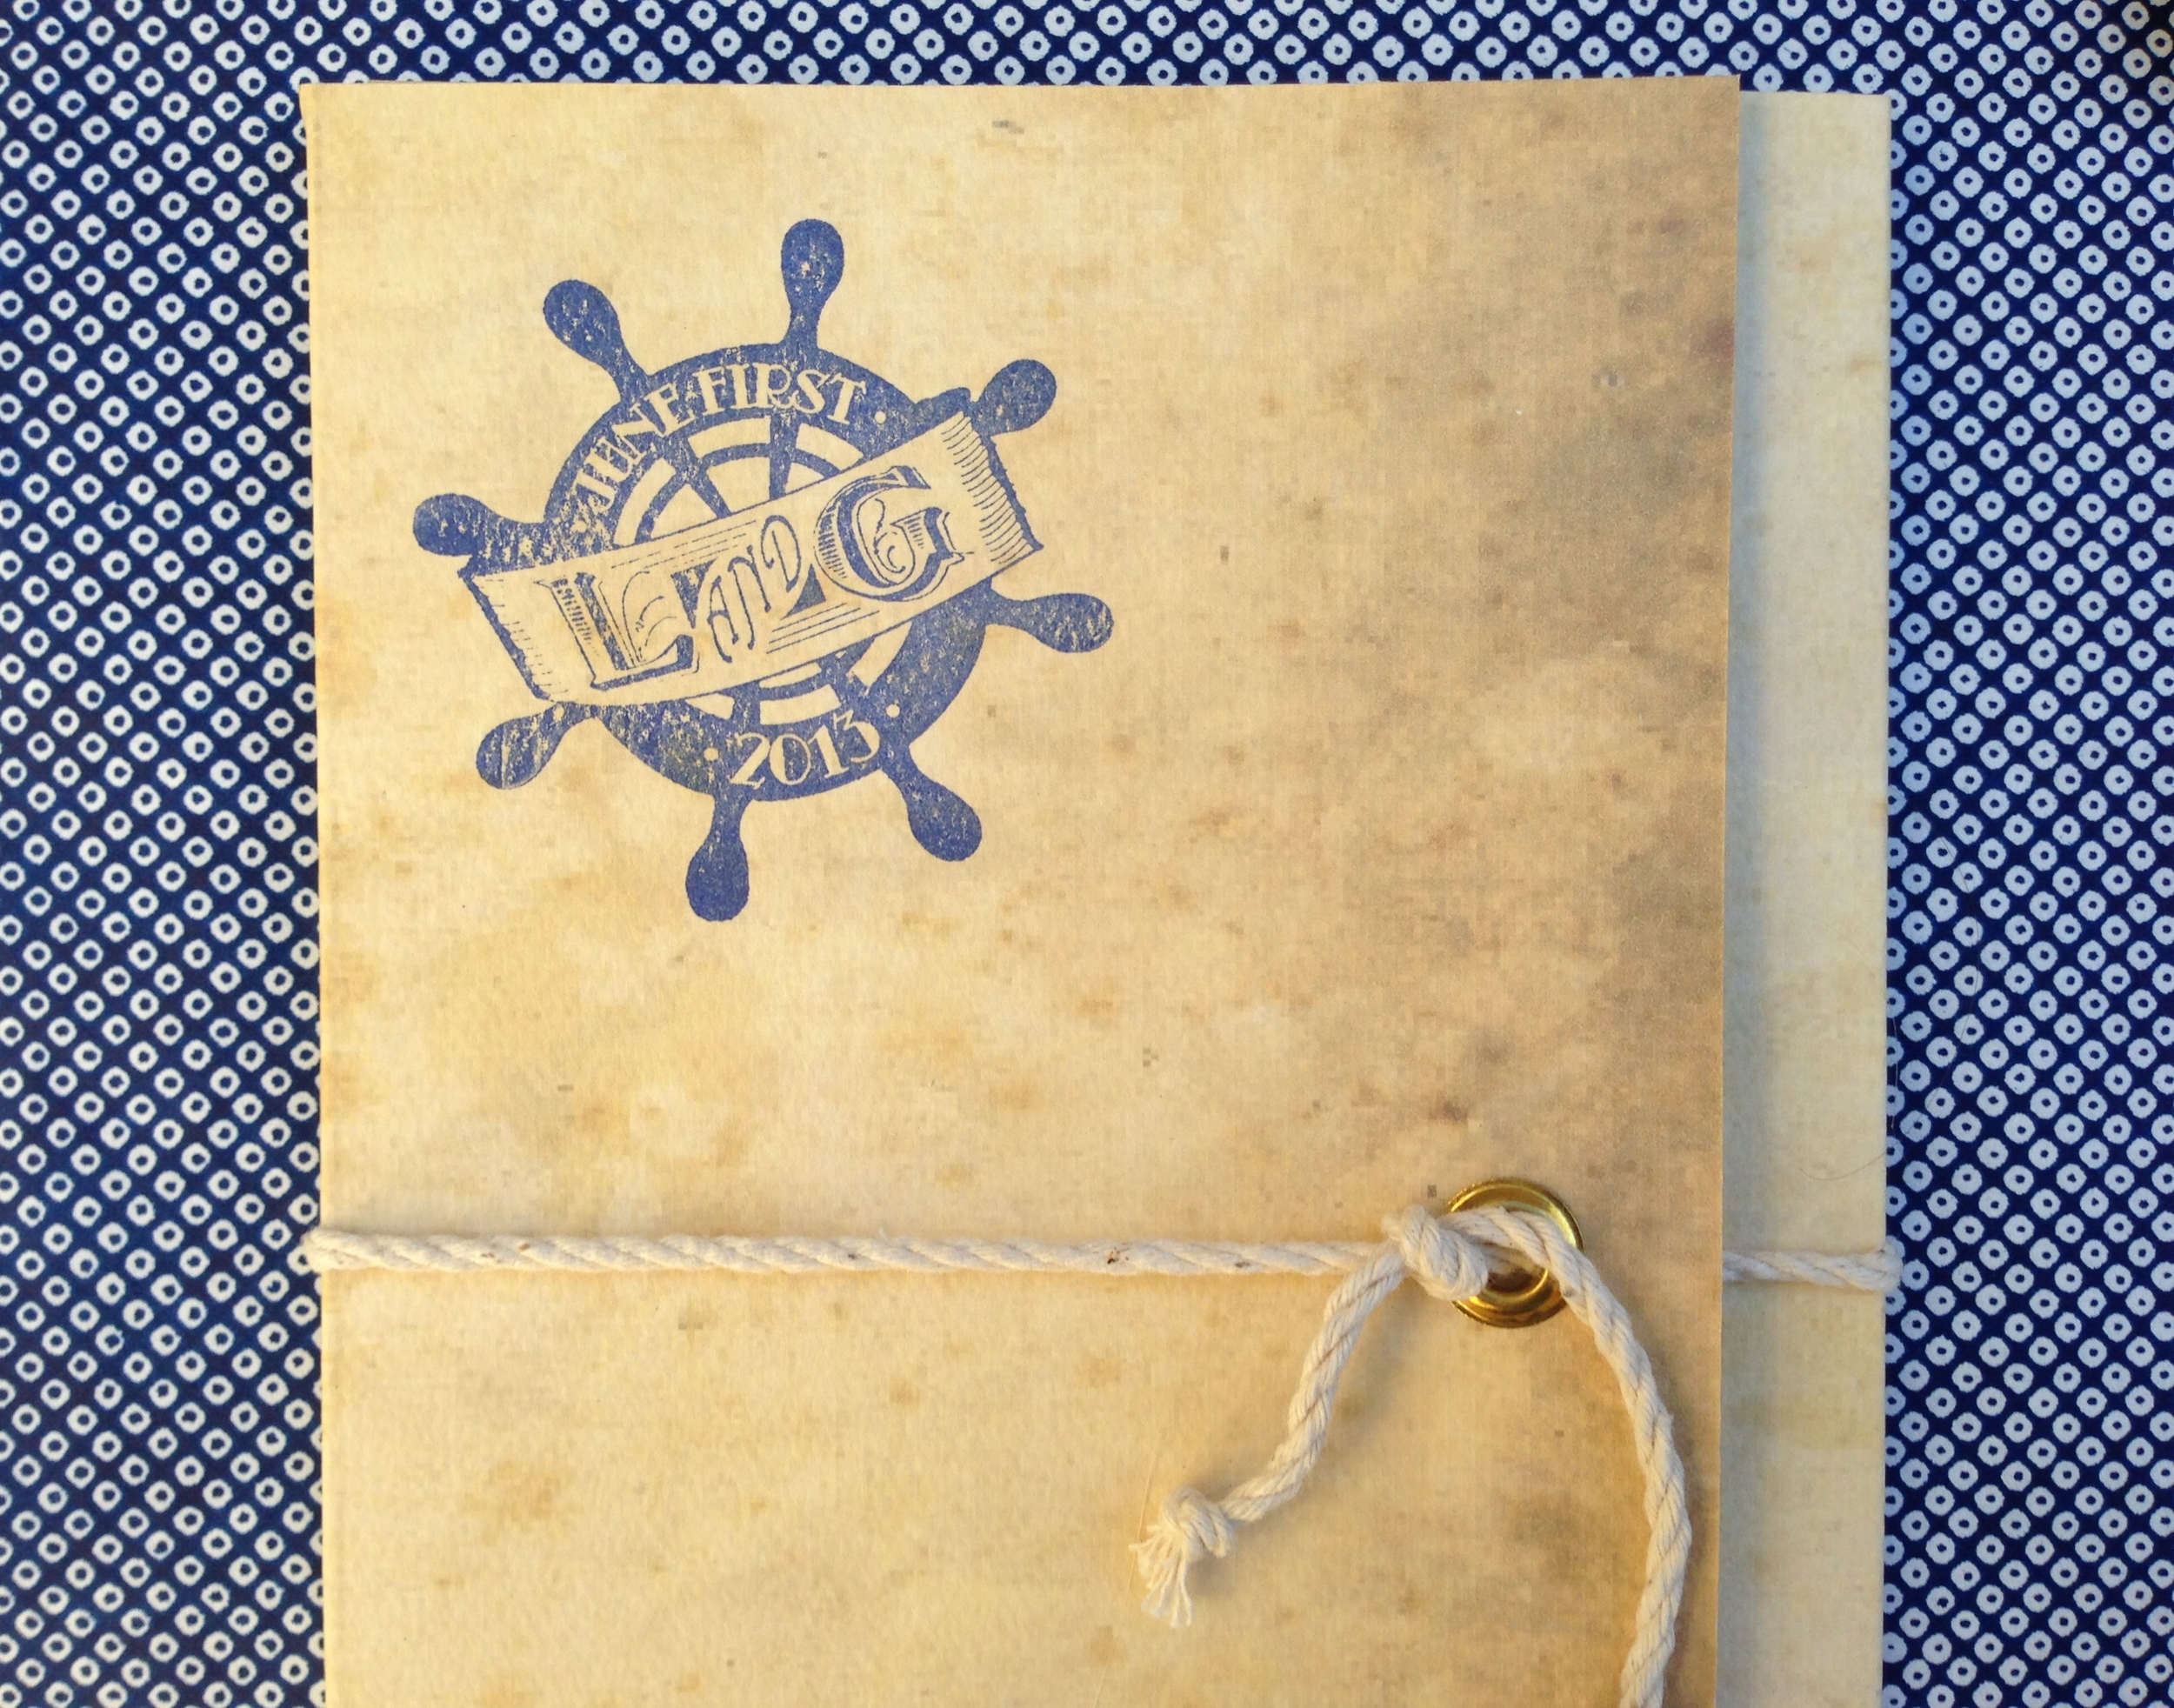 The outside of the folder was fitted with a brass grommet and tied with rope, then stamped with the couple's ship wheel logo.